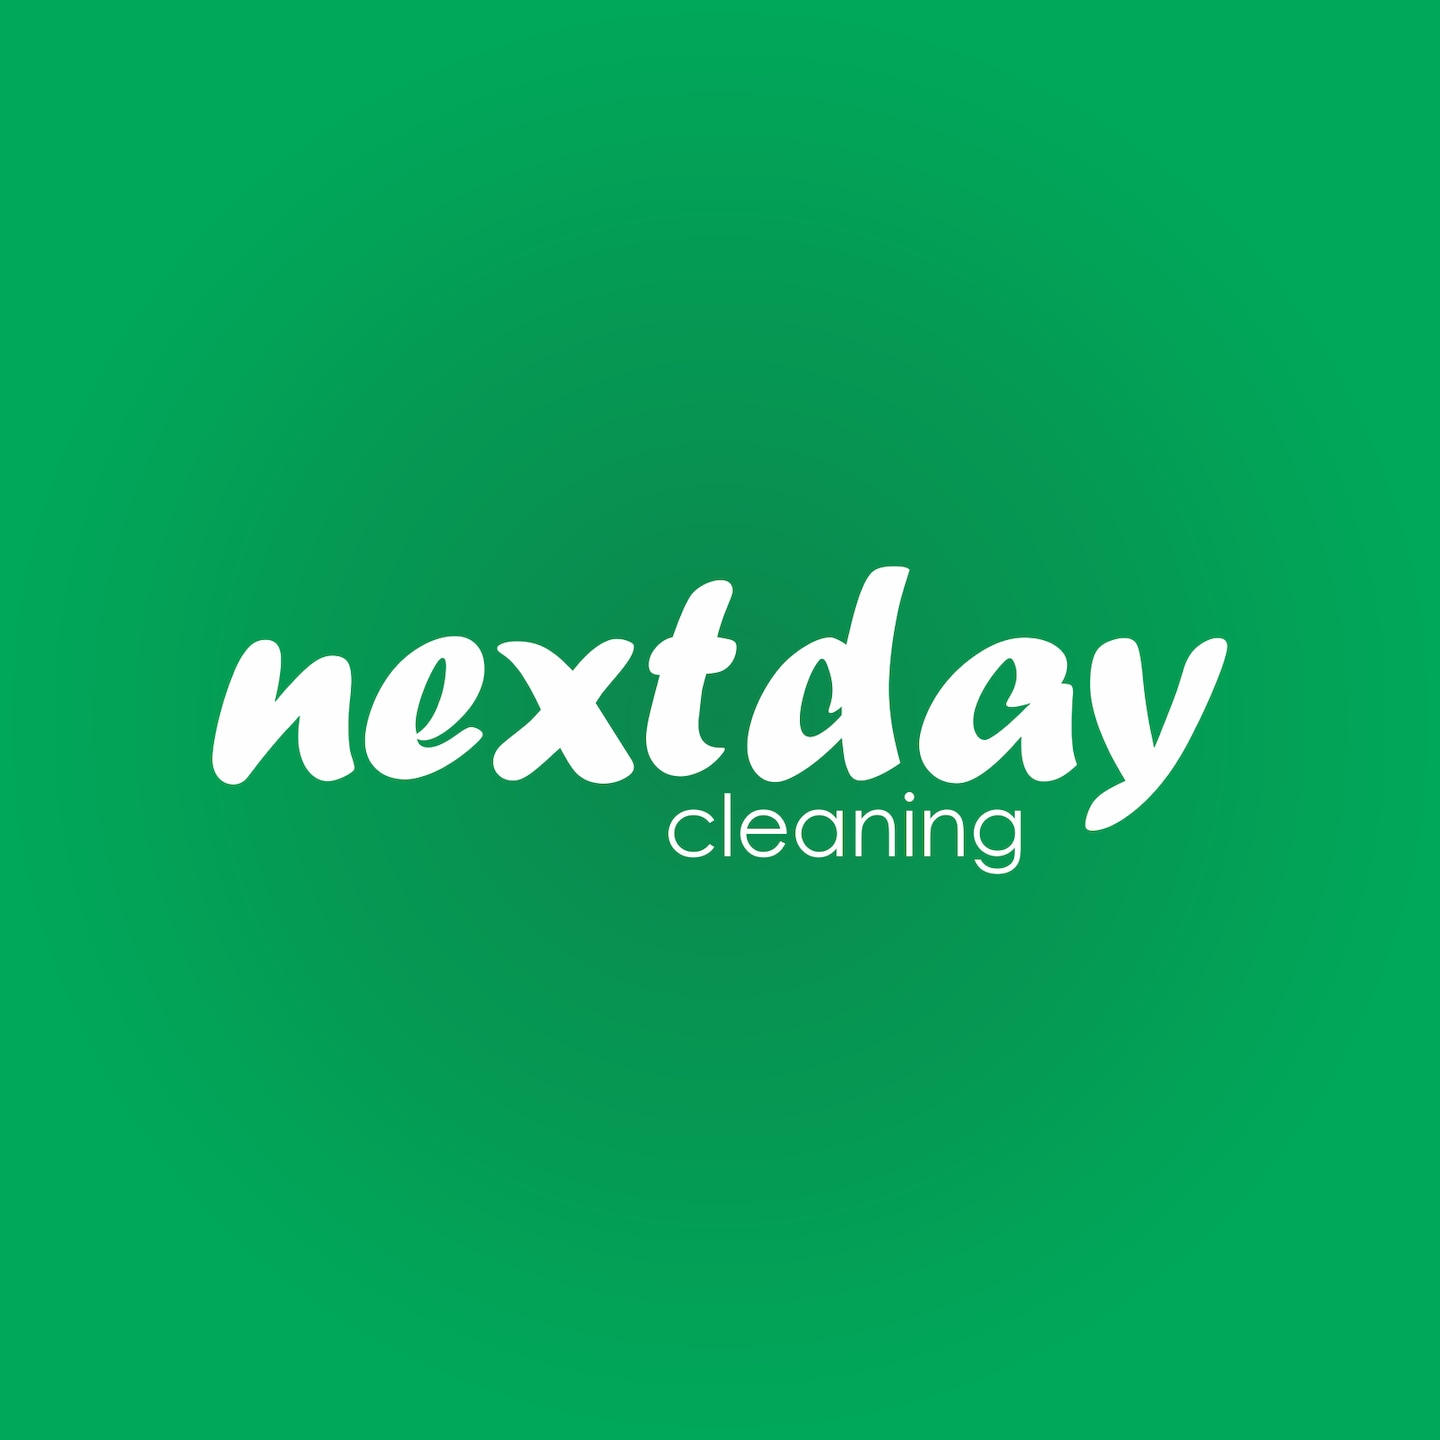 Next Day Cleaning Service